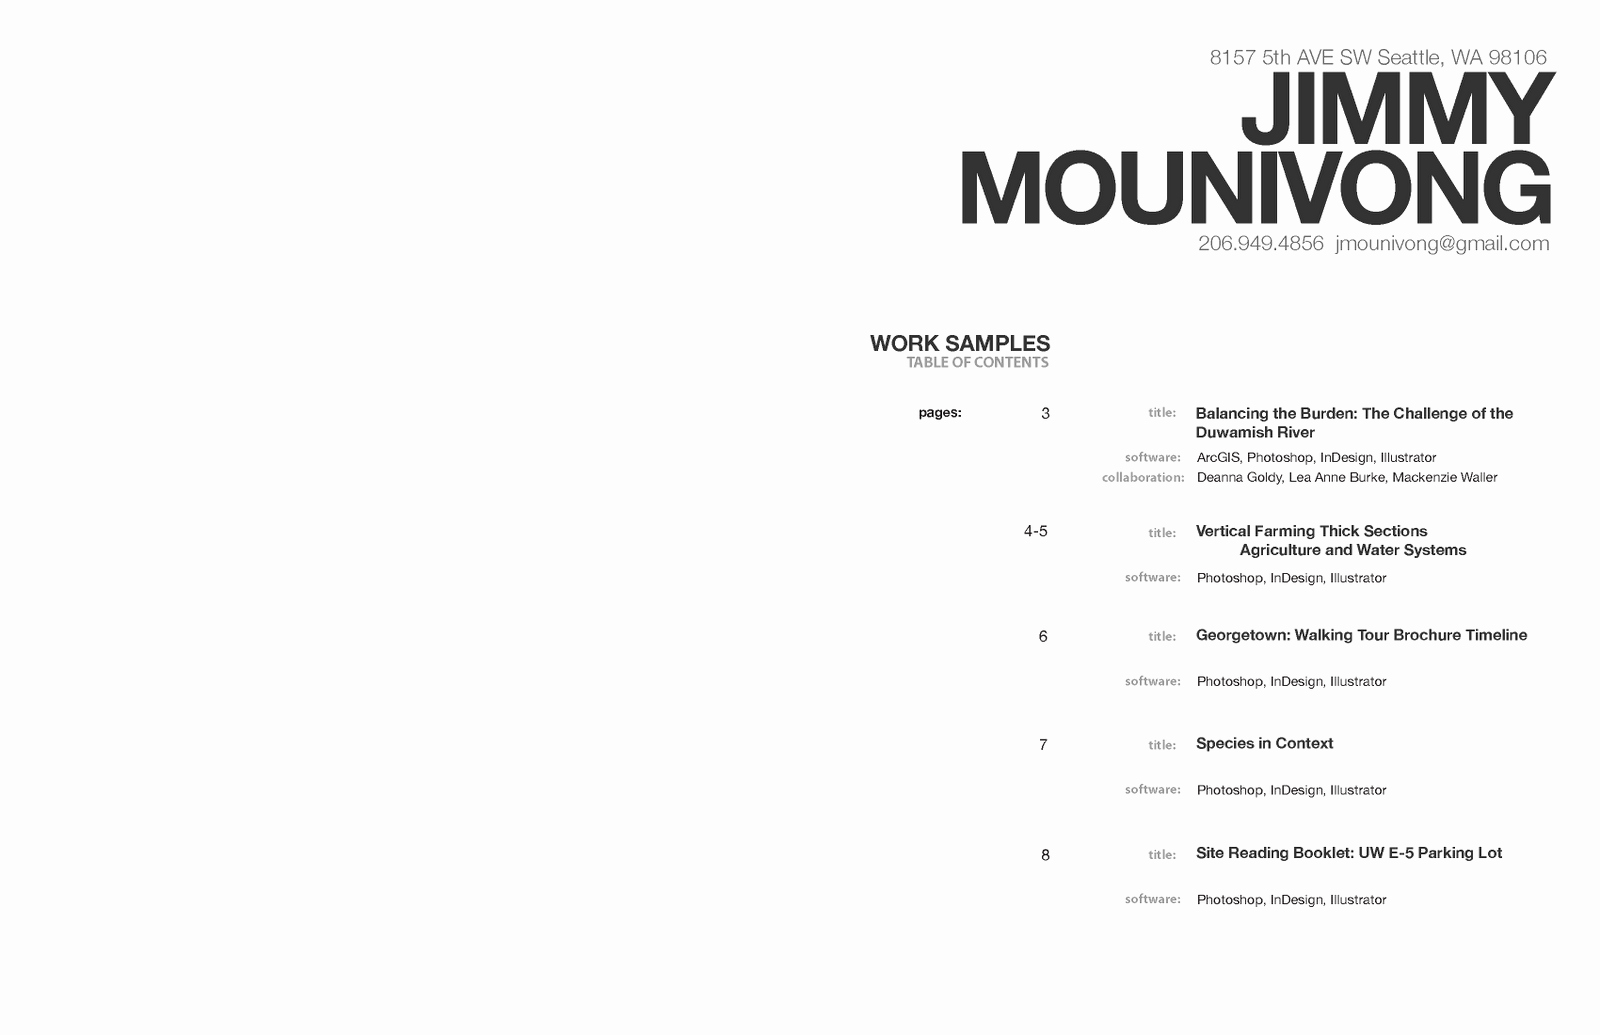 Portfolio Table Of Contents Template Elegant Jimmy Mounivong January 2011